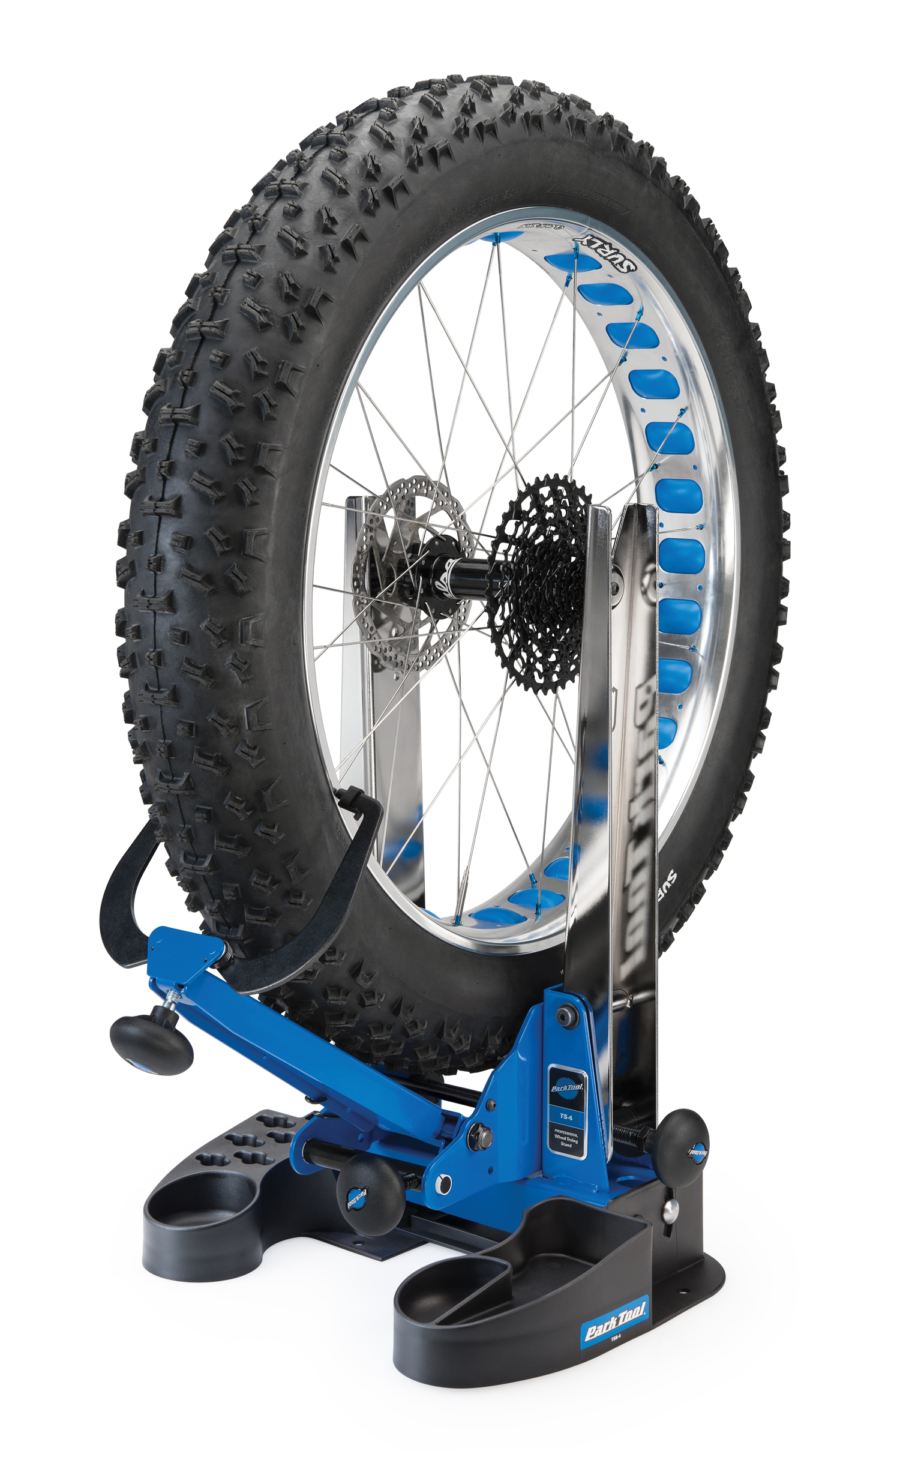 Park Tool TSB-4 Truing Stand Tilting Base with truing stand holding a fat tire bike wheel, enlarged